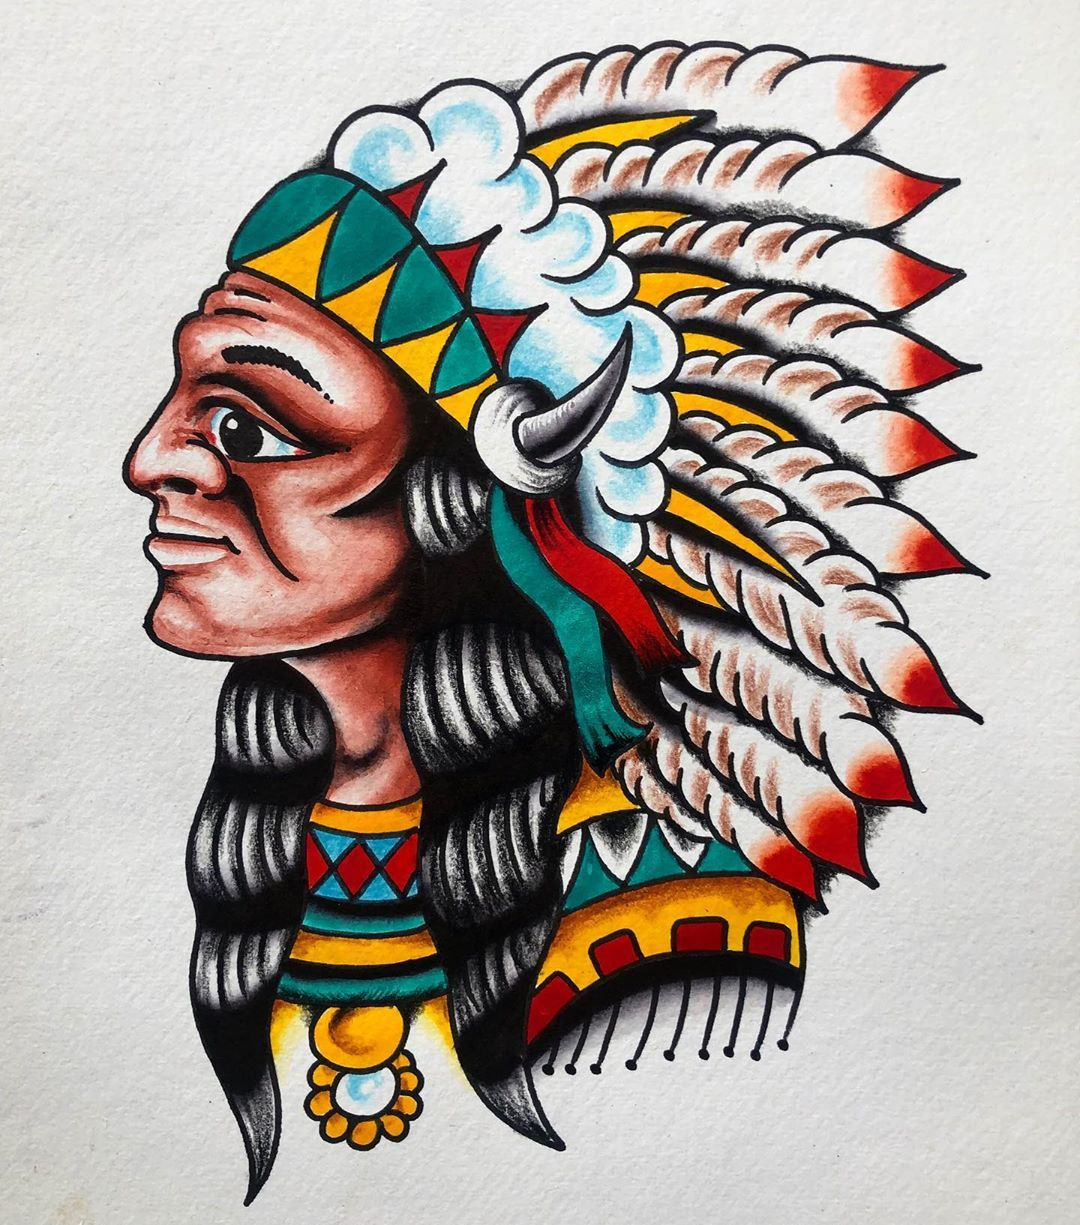 Big chief. FOR SALE £70 including postage. A4 size, ink and coloured pencil. If you would like to buy it, shoot me a dm! . . . . . . . . . . . . . . .  #tattoo #tattoos #ink #inked #art #tattooartist #tattooed #tattooart #tattoolife #blackwork #love #tattooing #tattooist #artist #tatuagem #tattooer #blackandgreytattoo #me #tatuaje #instagood #tattoodesign #blackandgrey #traditionaltattoo #tattooideas #drawing #tattooink #inkedgirls #tattoostyle #tatuajes #bhfyp